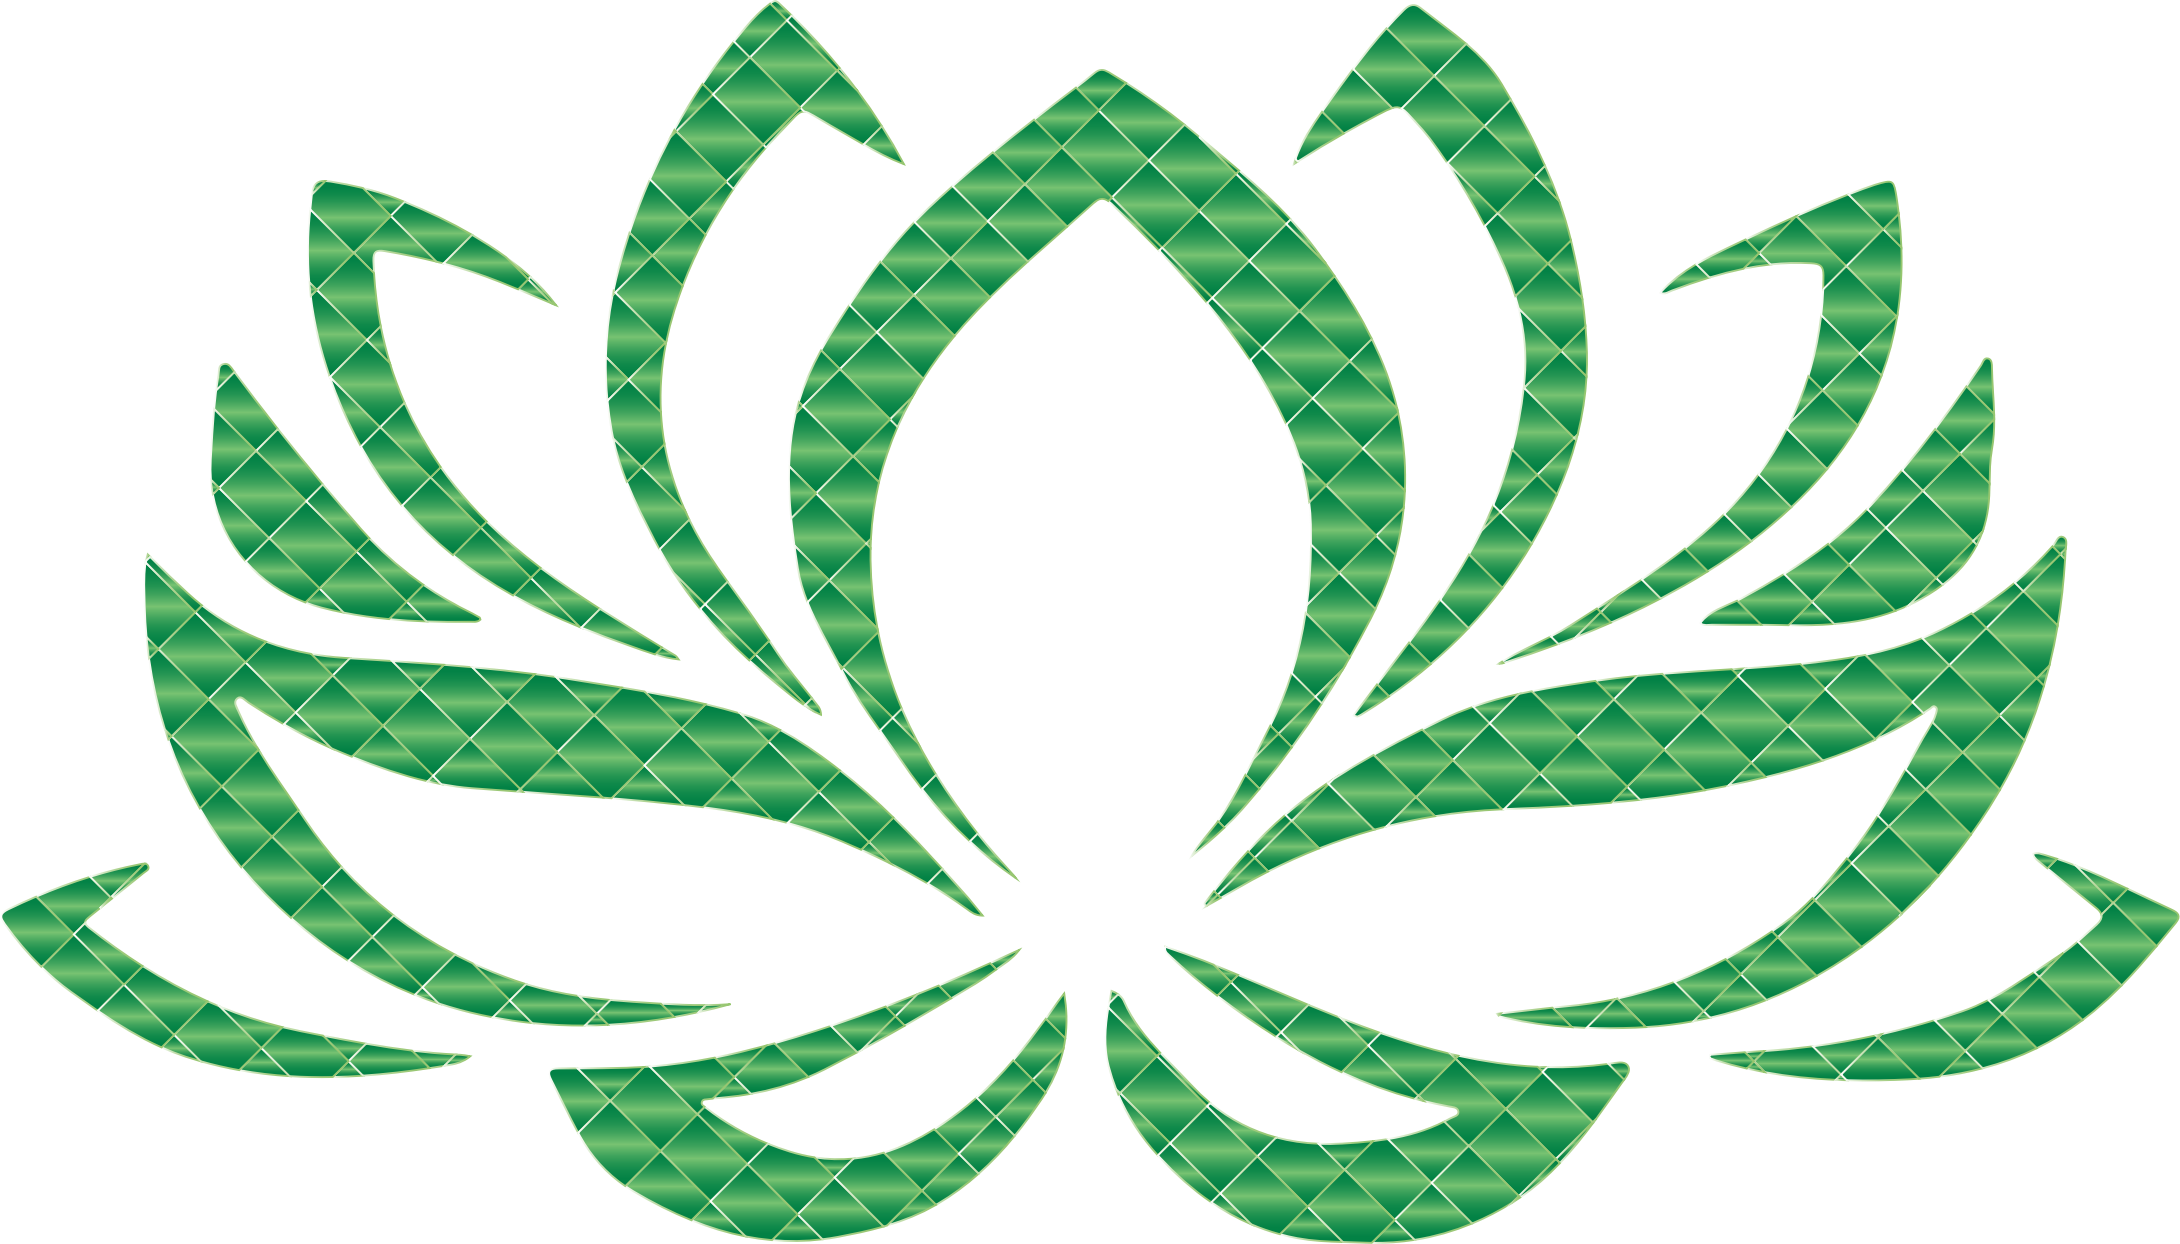 Emerald vector. Lotus flower no background